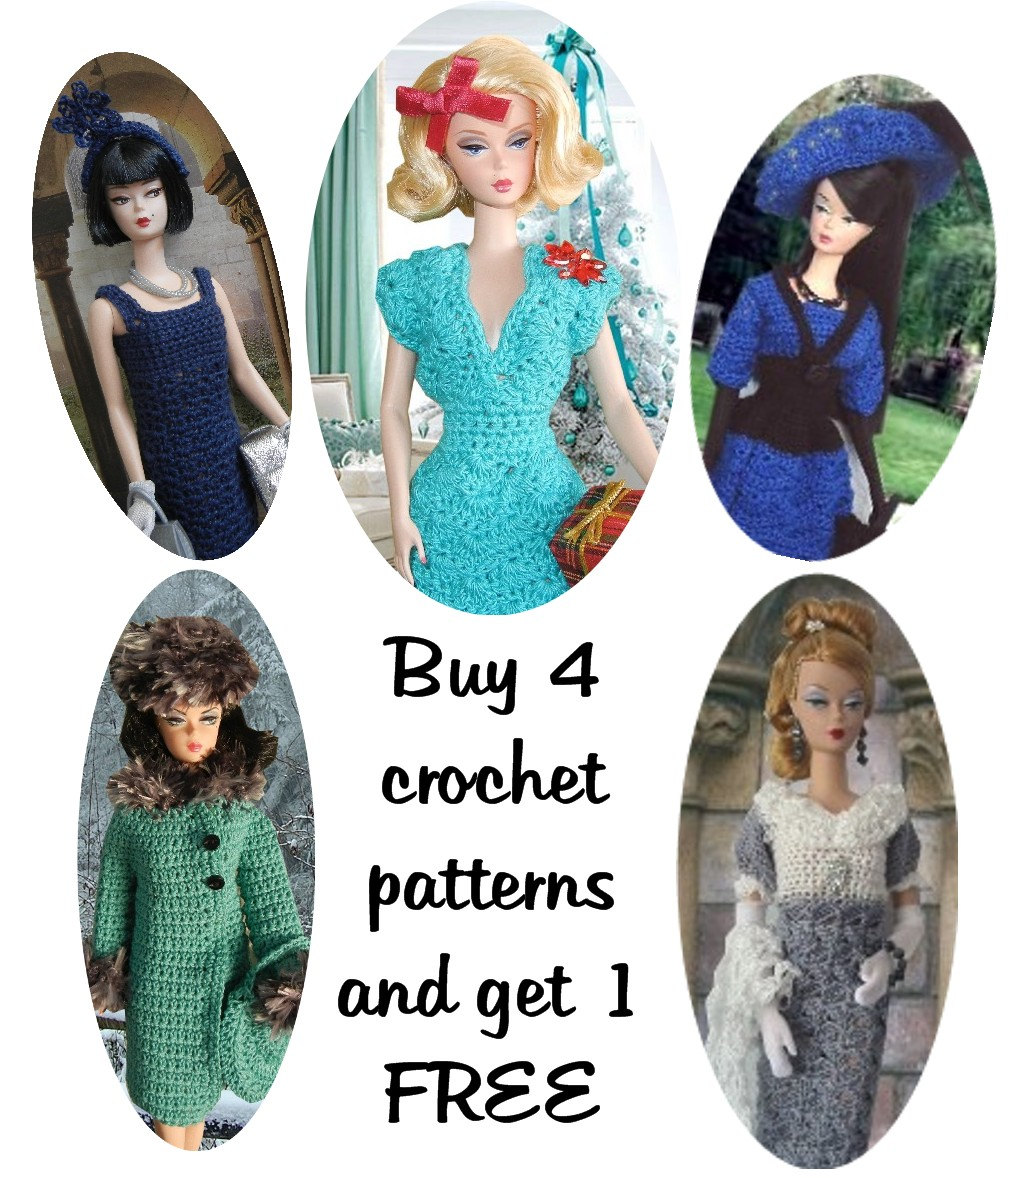 Buy 4 Crochet Patterns And Get 1 FREE For Baby And Doll